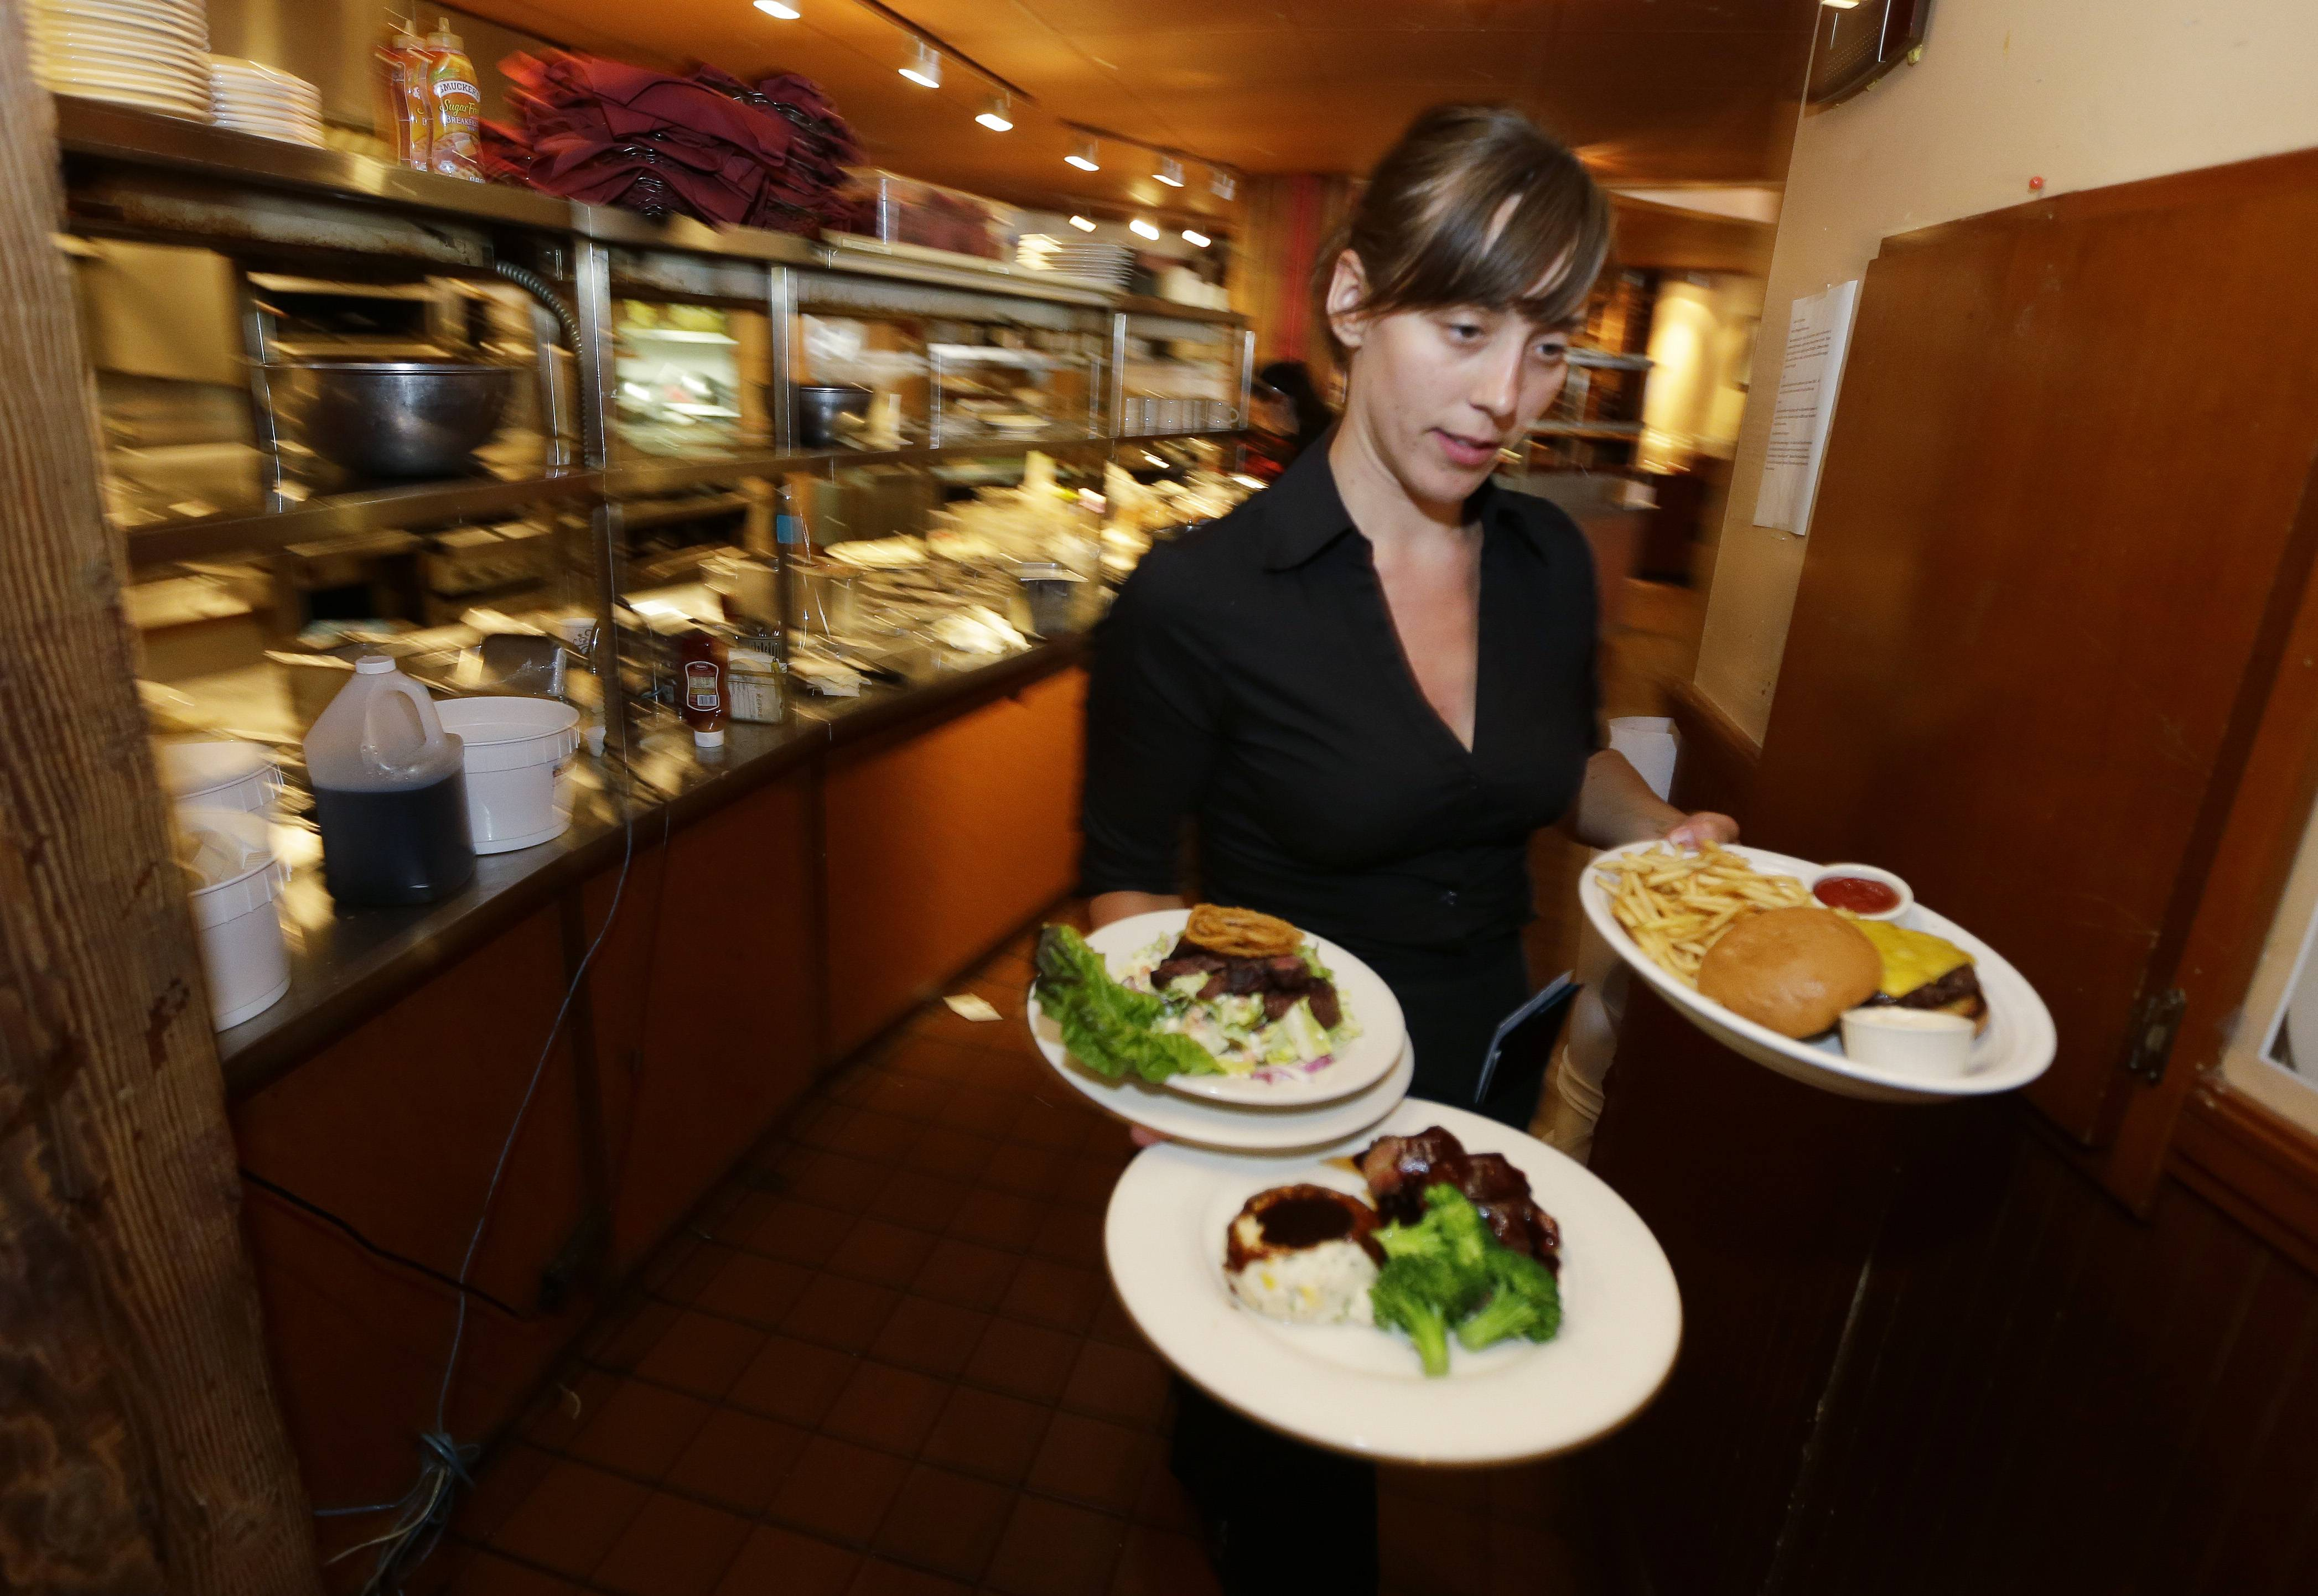 Wendy Harrison, a waitress at the Grill in Seattle, carries food to a table as she works during lunchtime. An Associated Press comparison of the cost of living at several other major U.S. cities found that a $15 minimum wage, like Seattle adopted this week, will make a difference, but won't buy a lavish lifestyle.